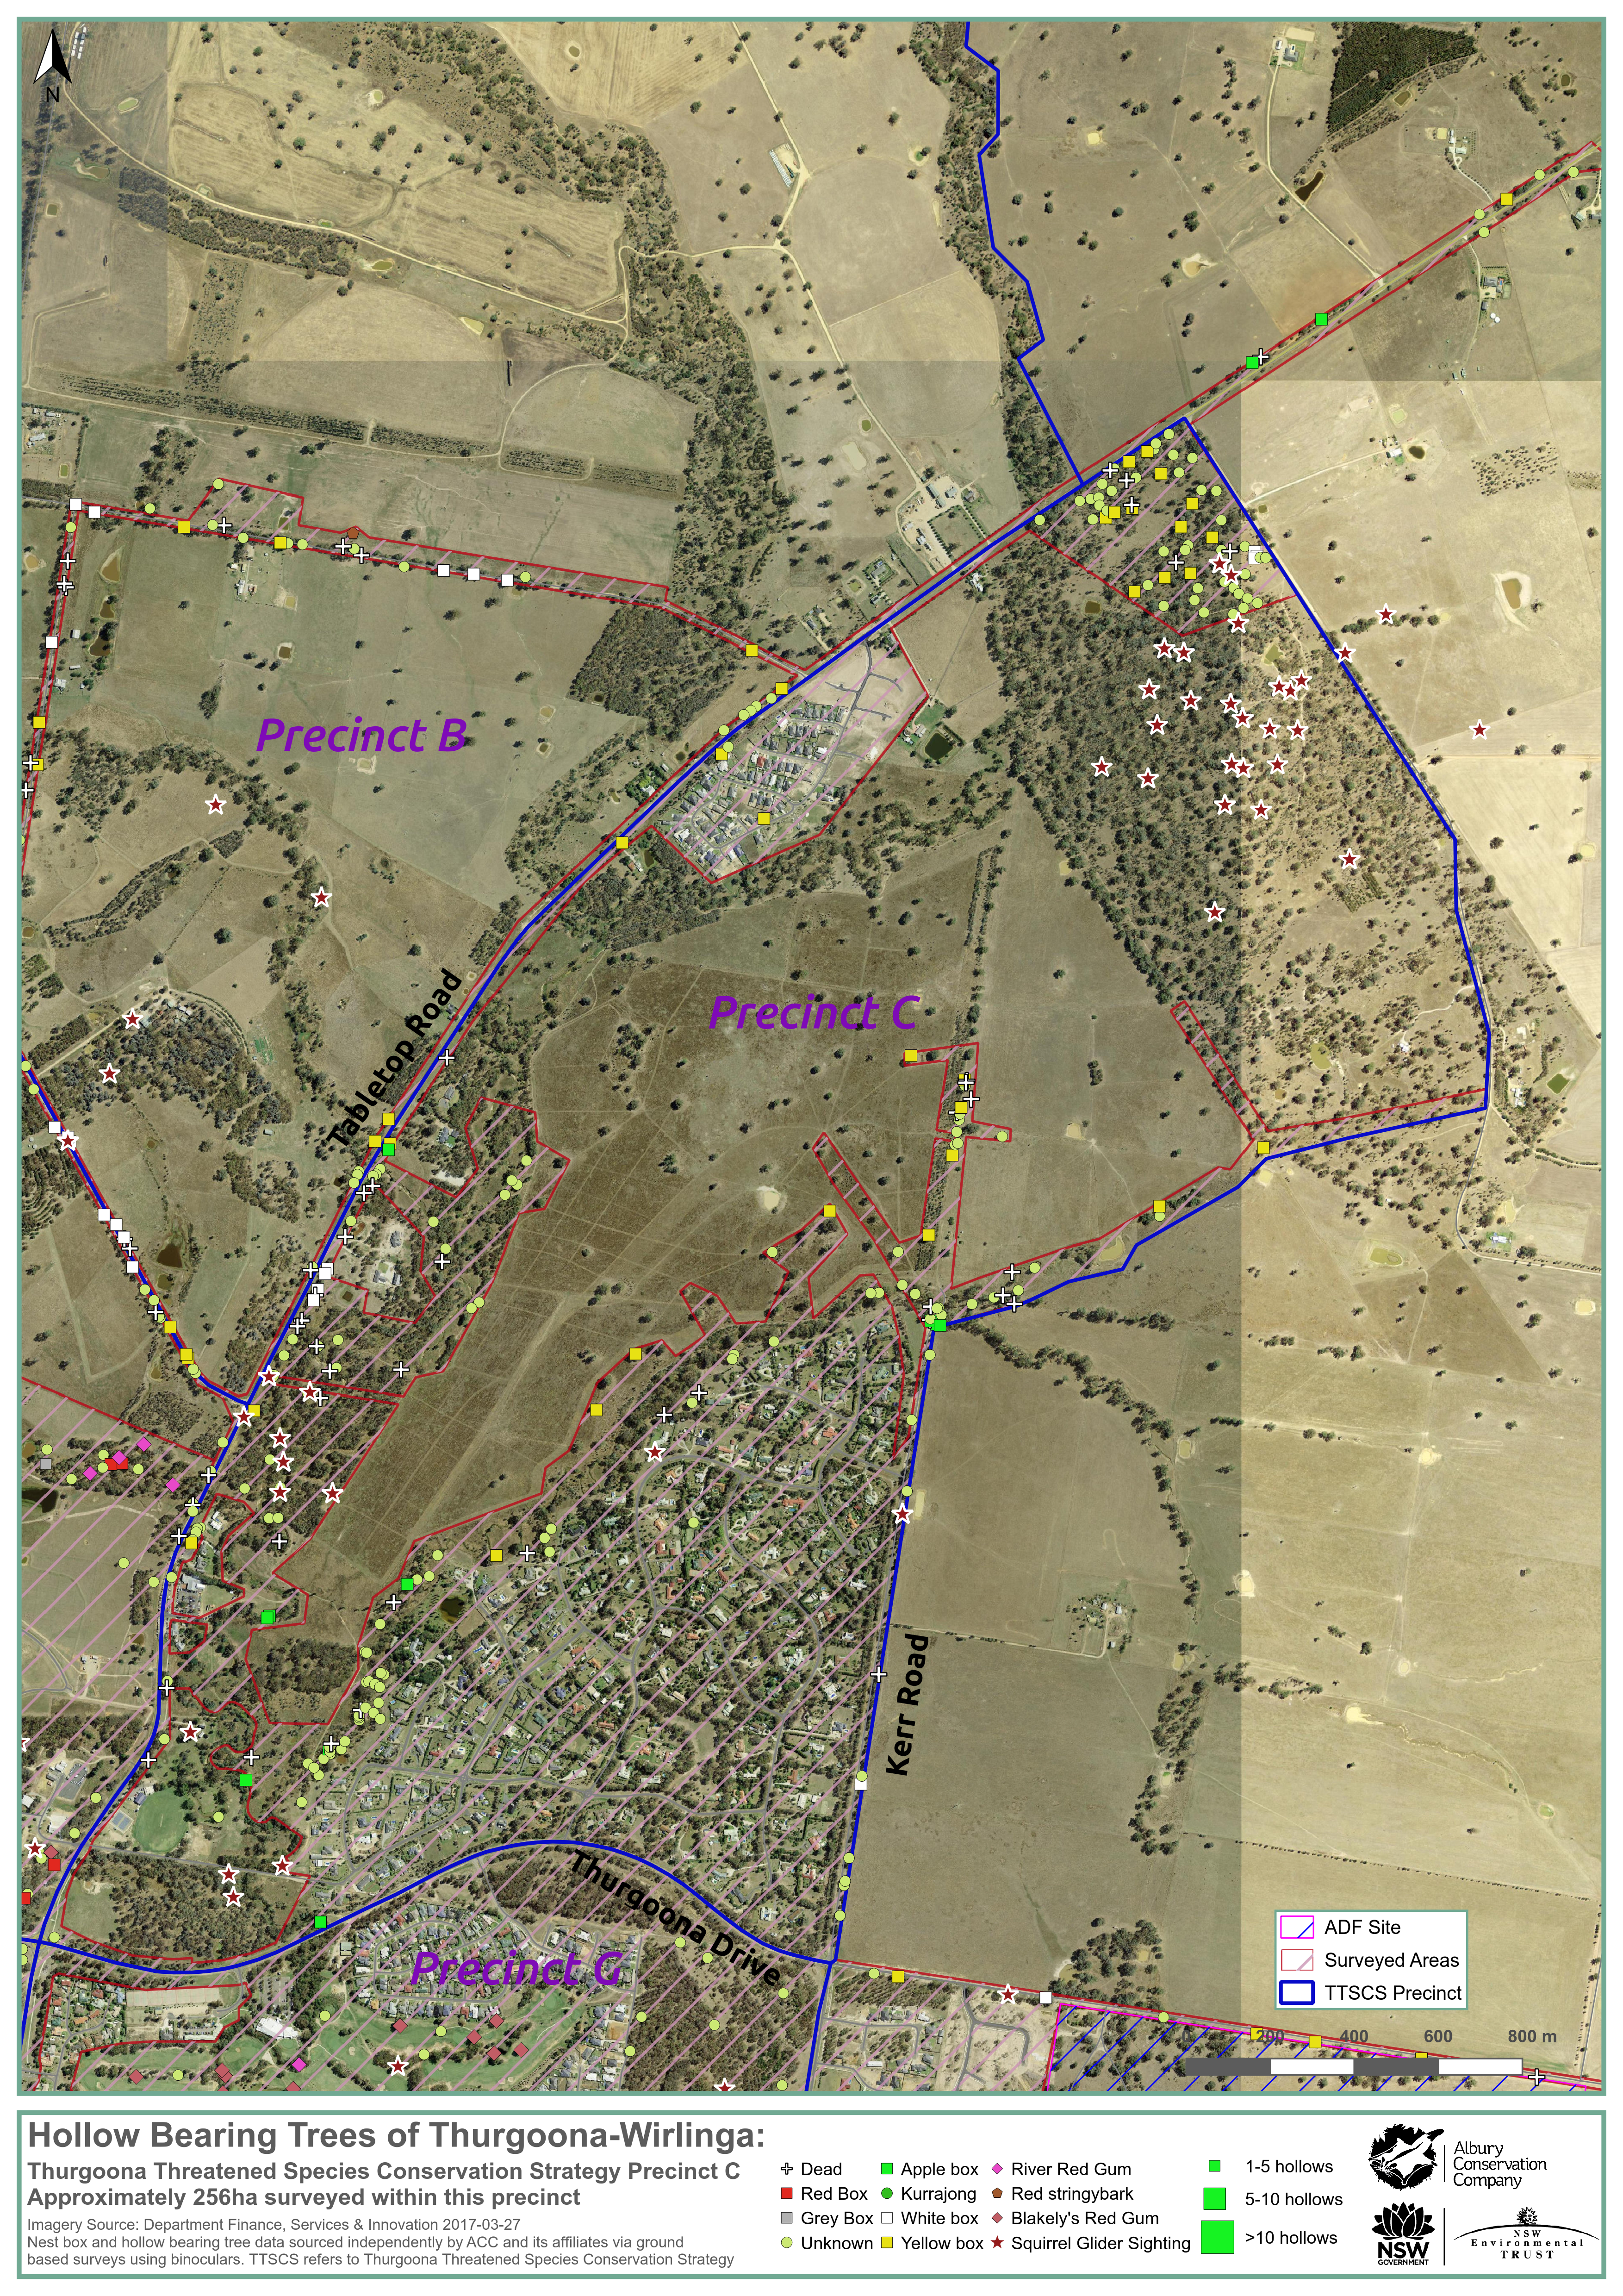 Map of Hollow-bearing Trees in Thurgoona (Precinct C - Thurgoona Threatened Species Conservation Strategy) March 2017